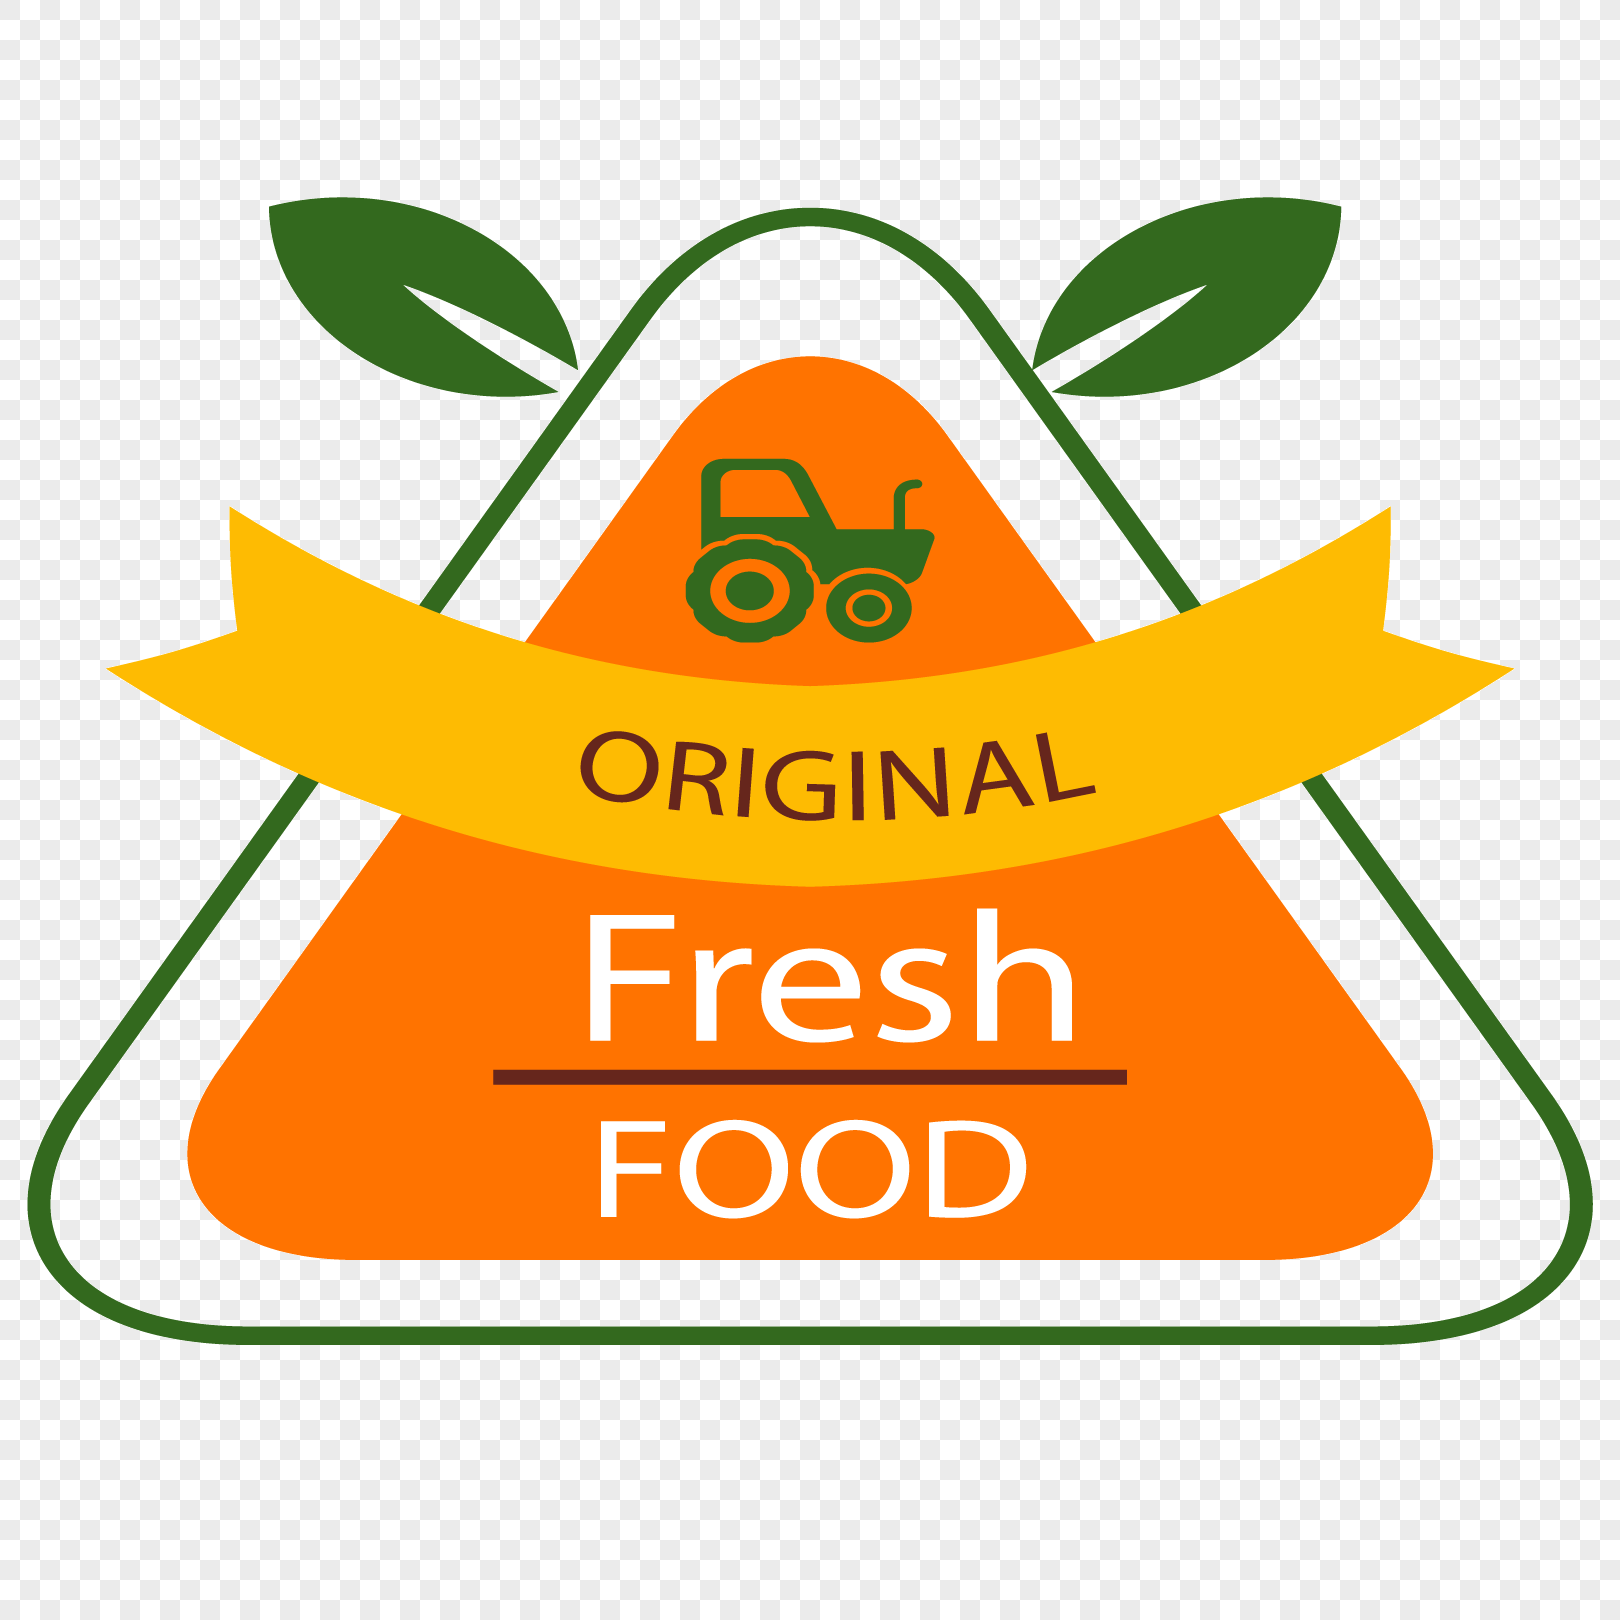 yellow orange round triangle fresh food label png image_picture free